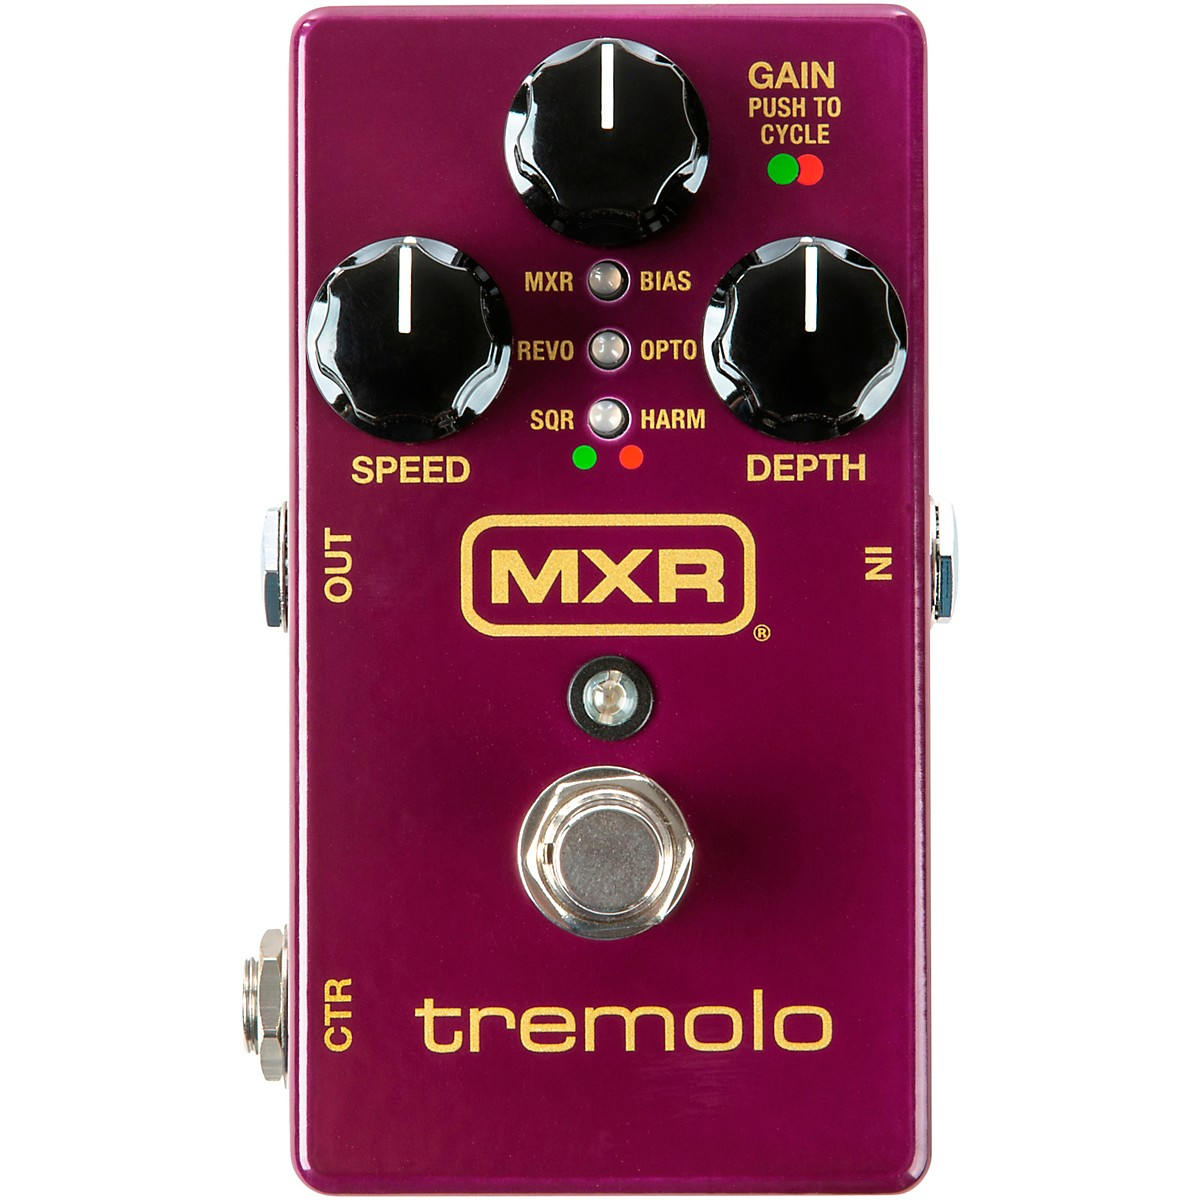 MXR Tremolo Effects Pedal